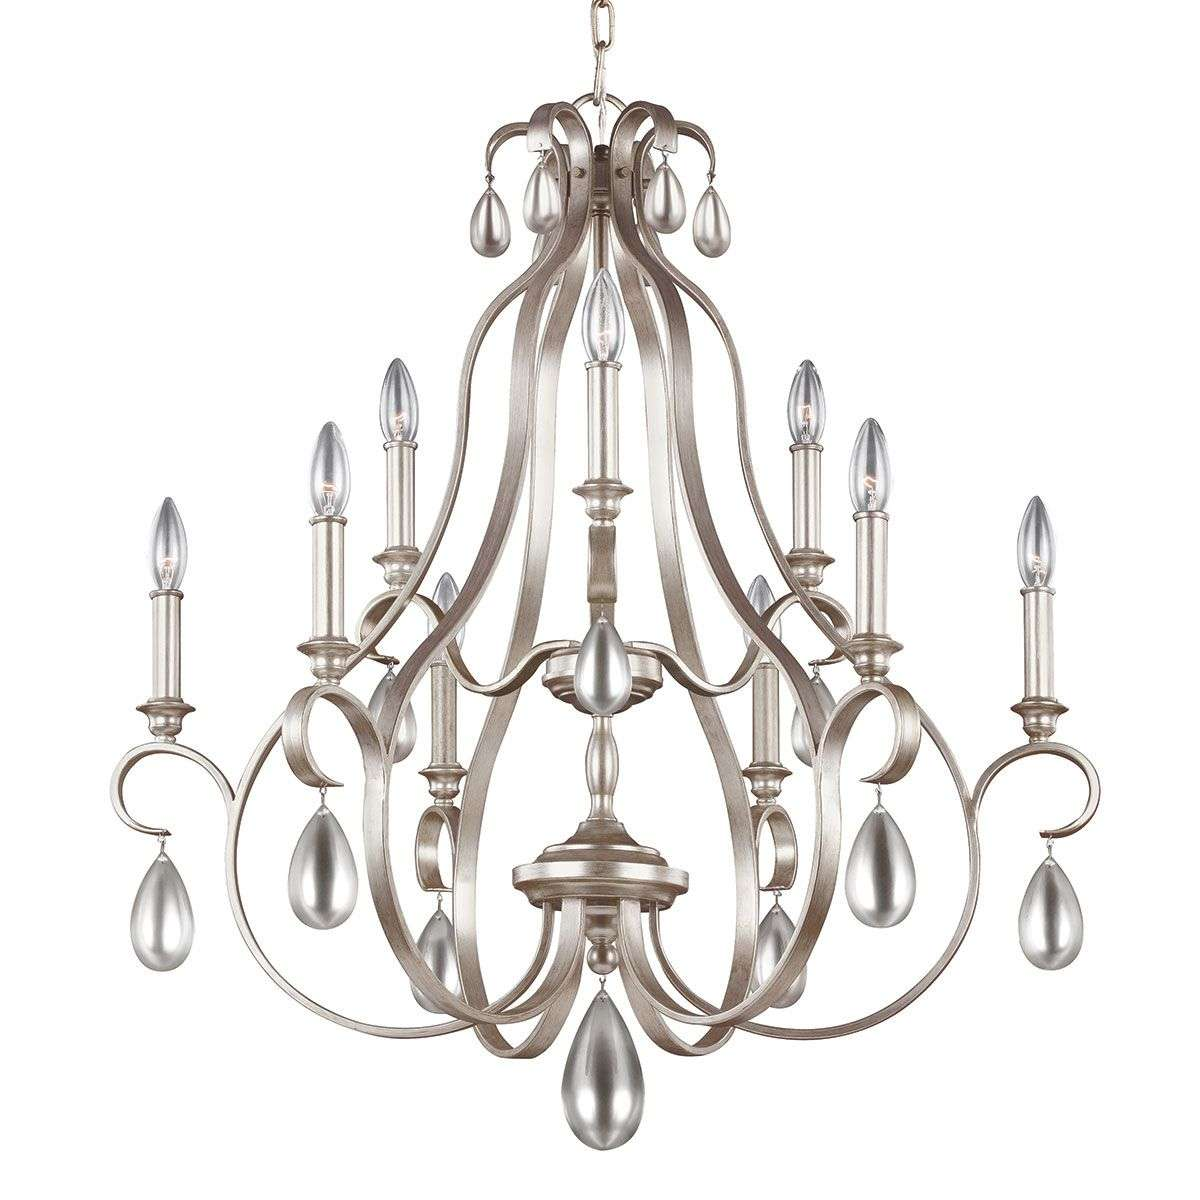 Silver coloured chandelier dewitt nine bulb lights silver coloured chandelier dewitt nine bulb 3048855 31 aloadofball Image collections